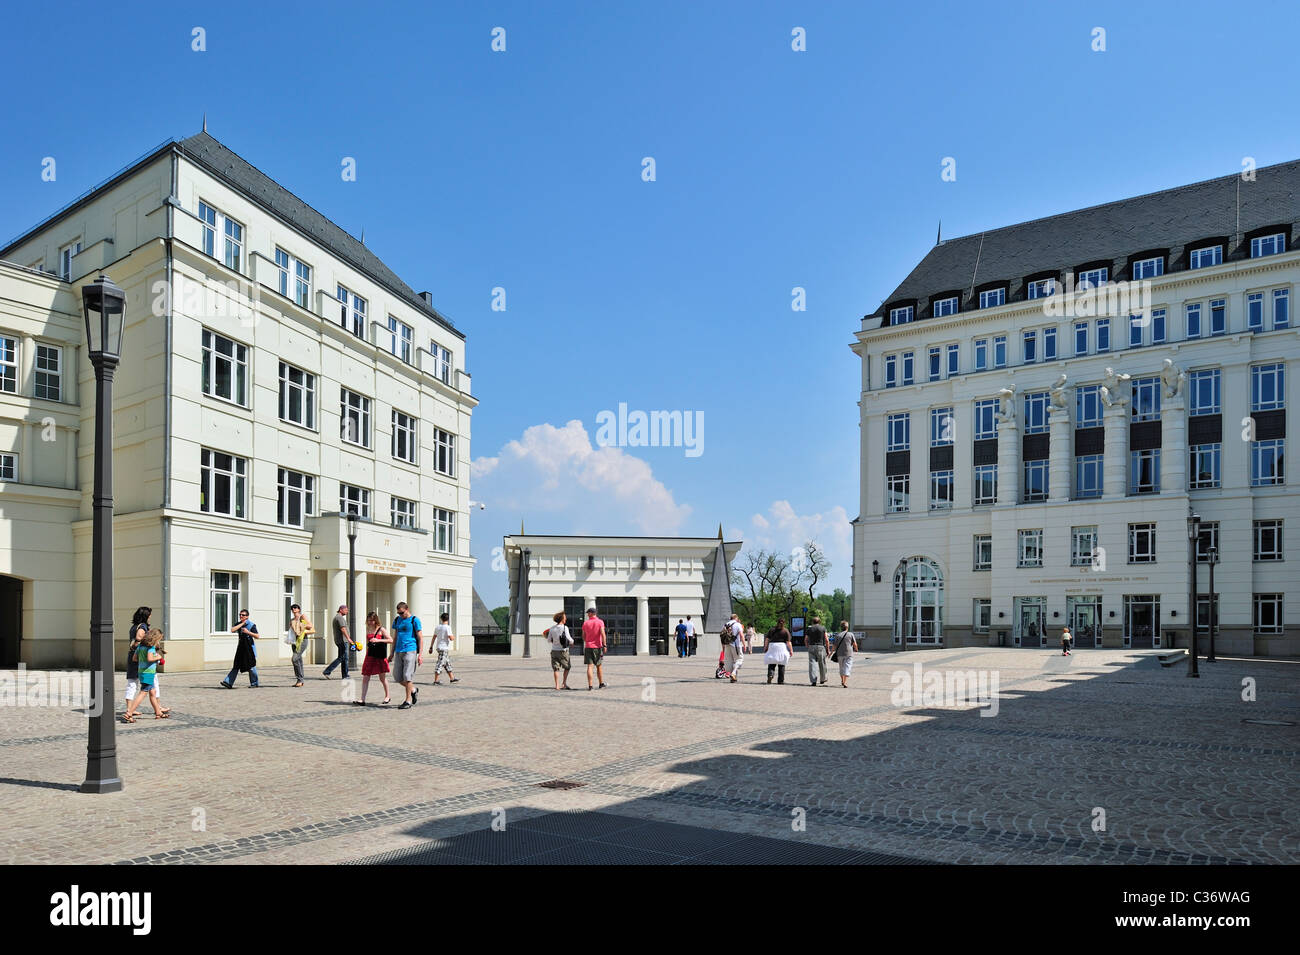 The cité judiciaire / Judiciary City on the Saint-Esprit plateau at Luxembourg, Grand Duchy of Luxembourg - Stock Image